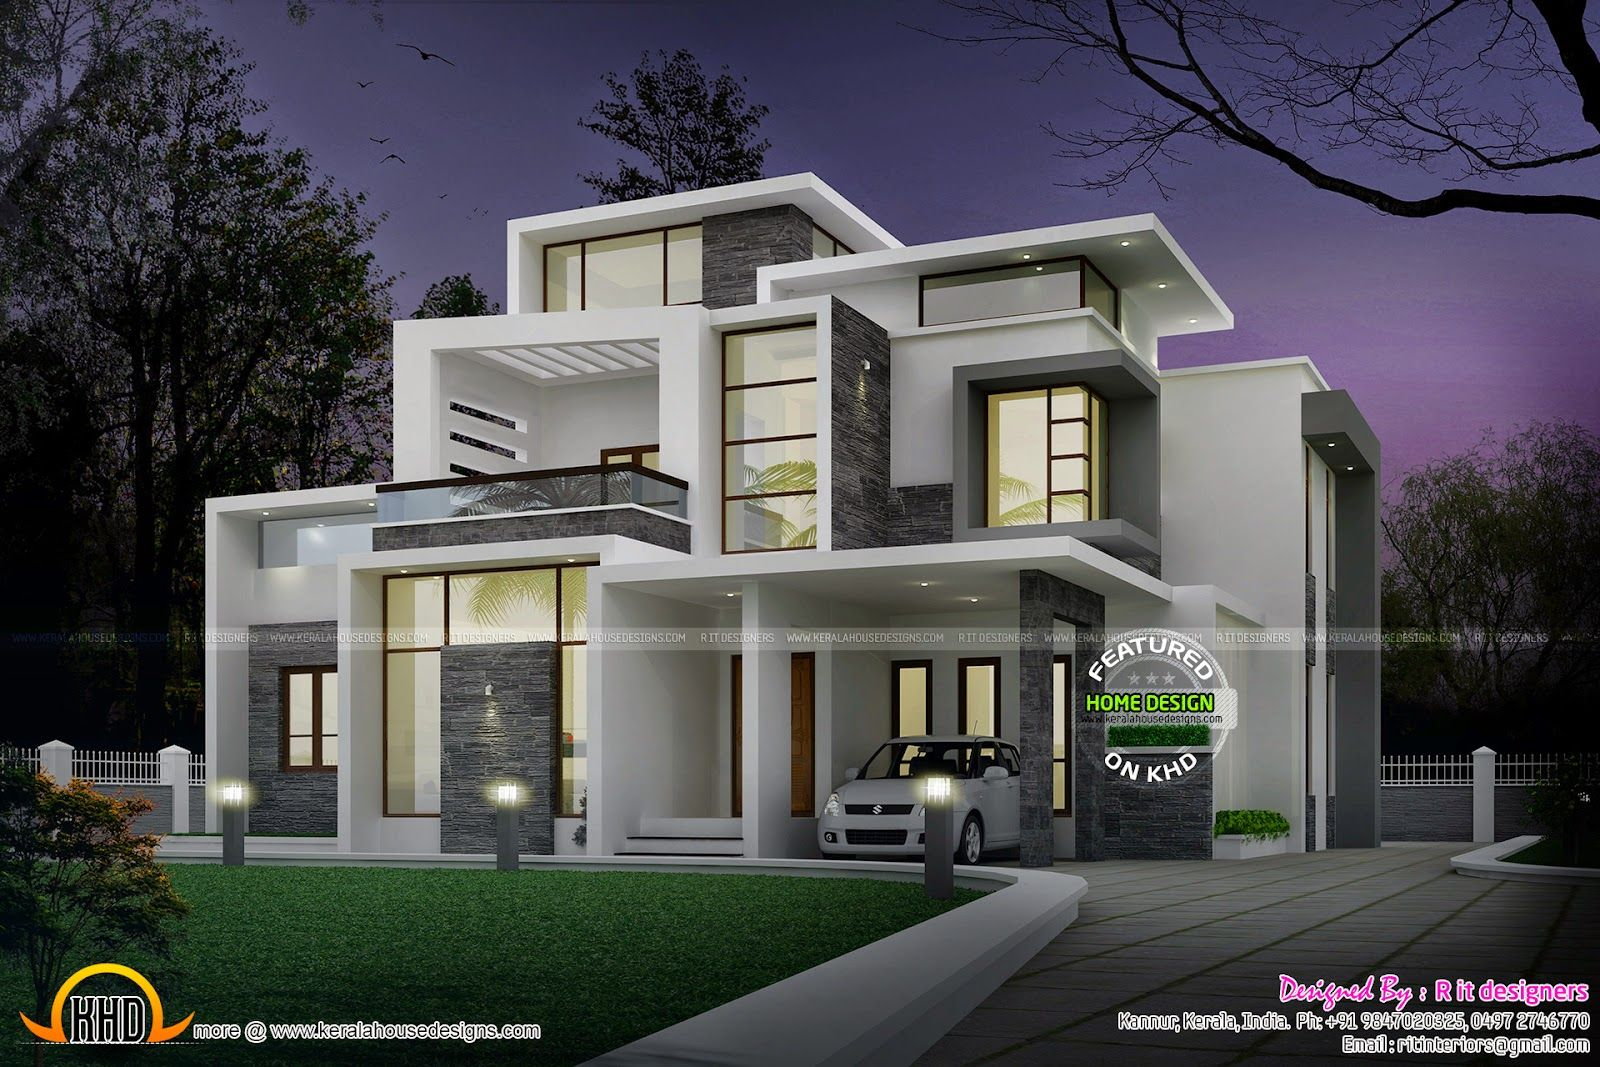 Grand contemporary home design kerala home design and for Contemporary house plans 2015